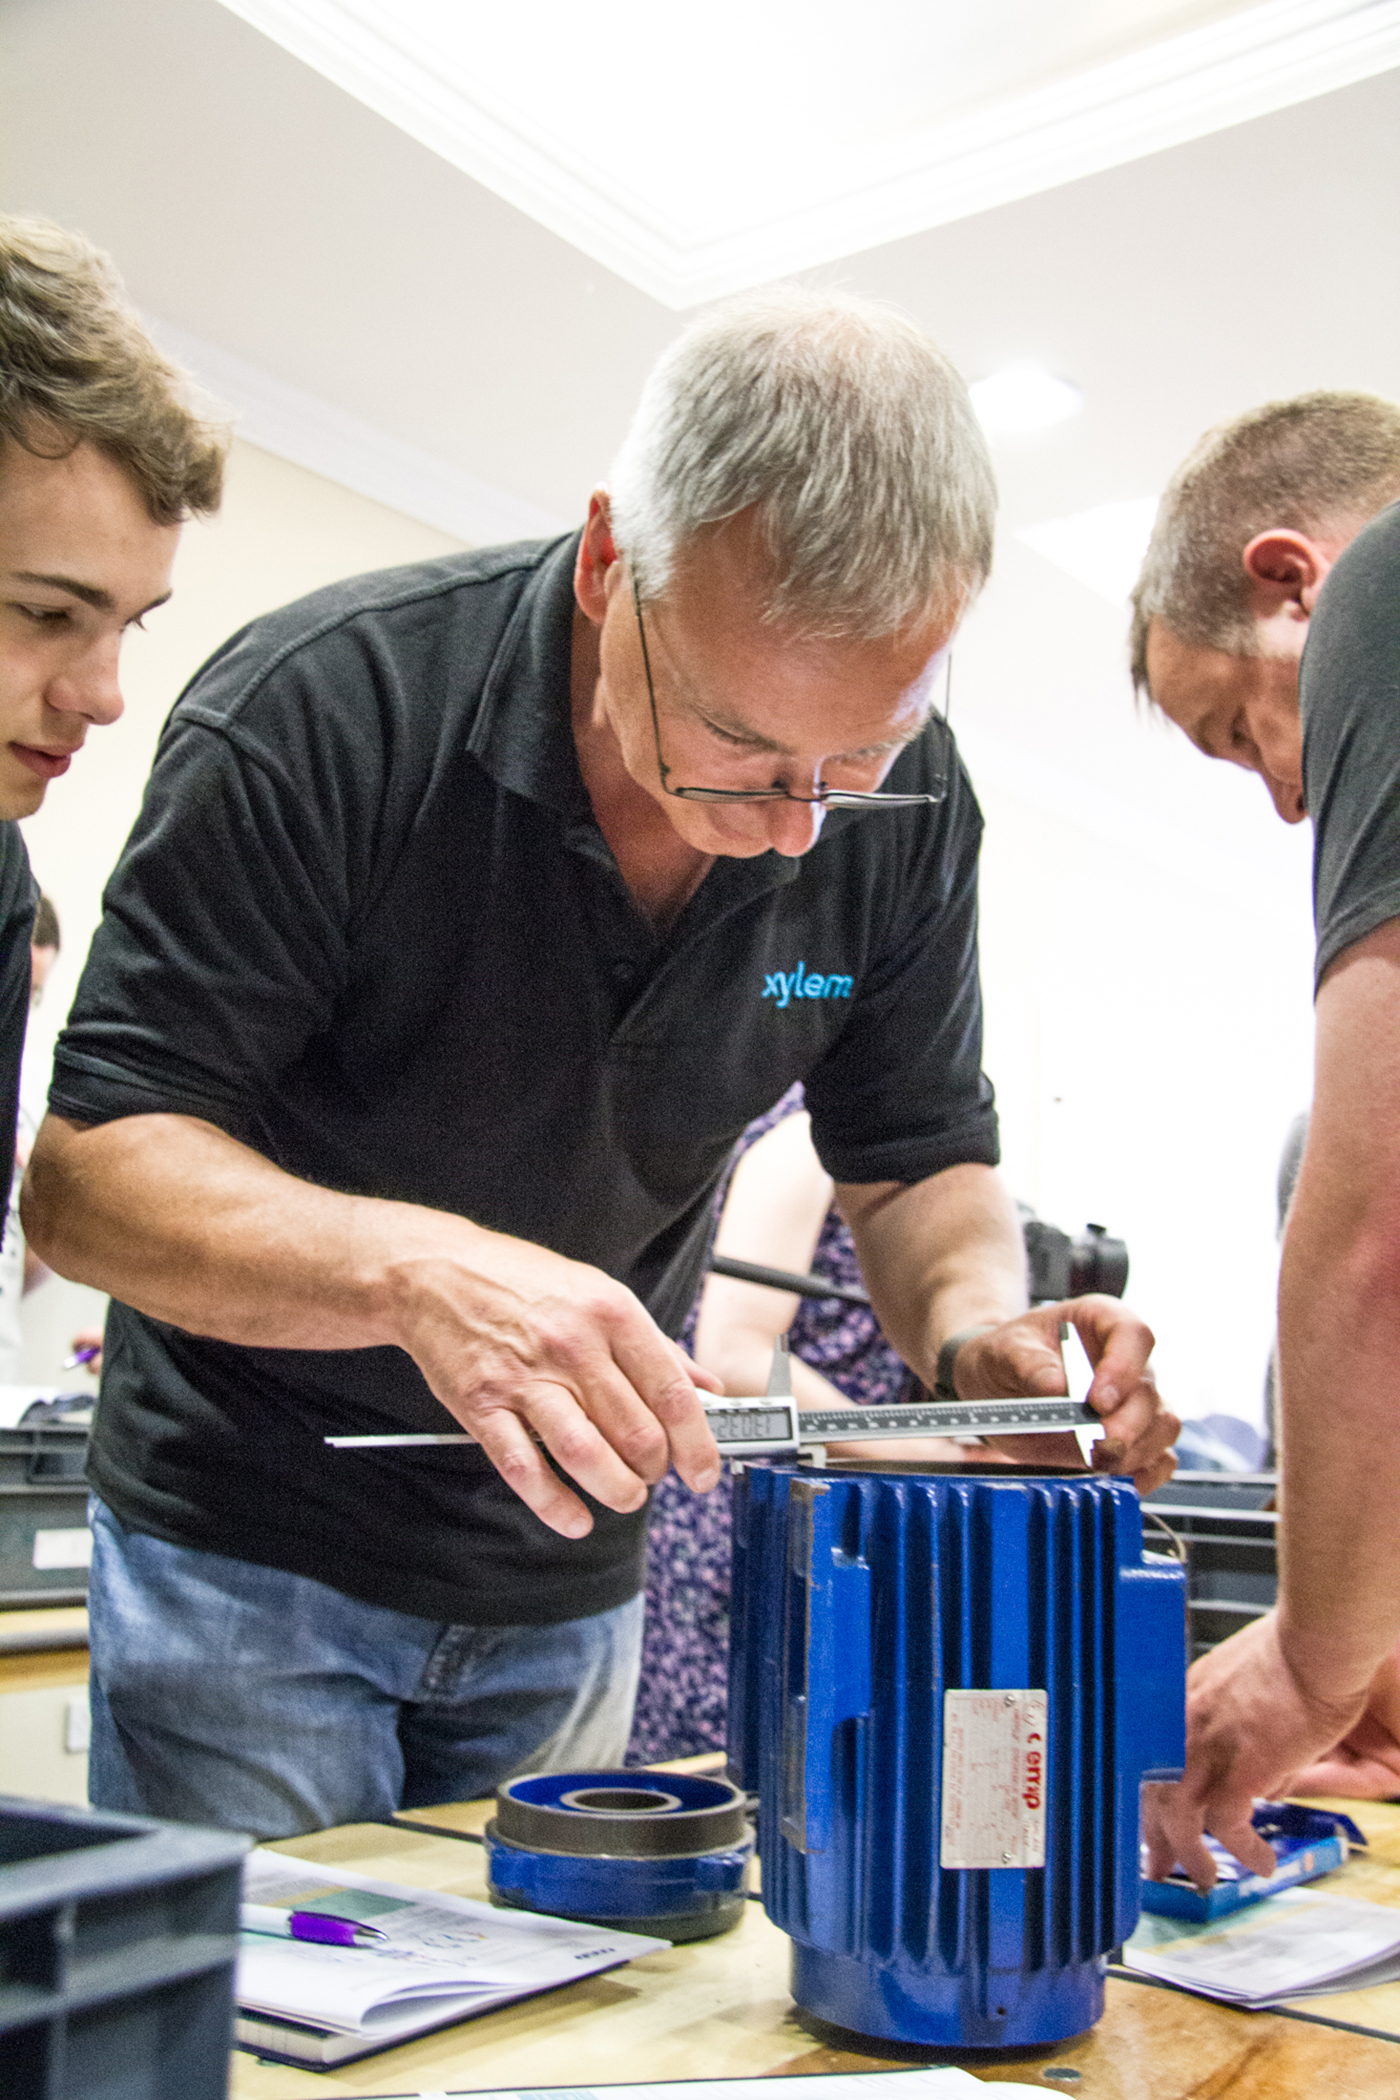 Success for delegates at AEMT's Ex equipment repair course in Loughborough.